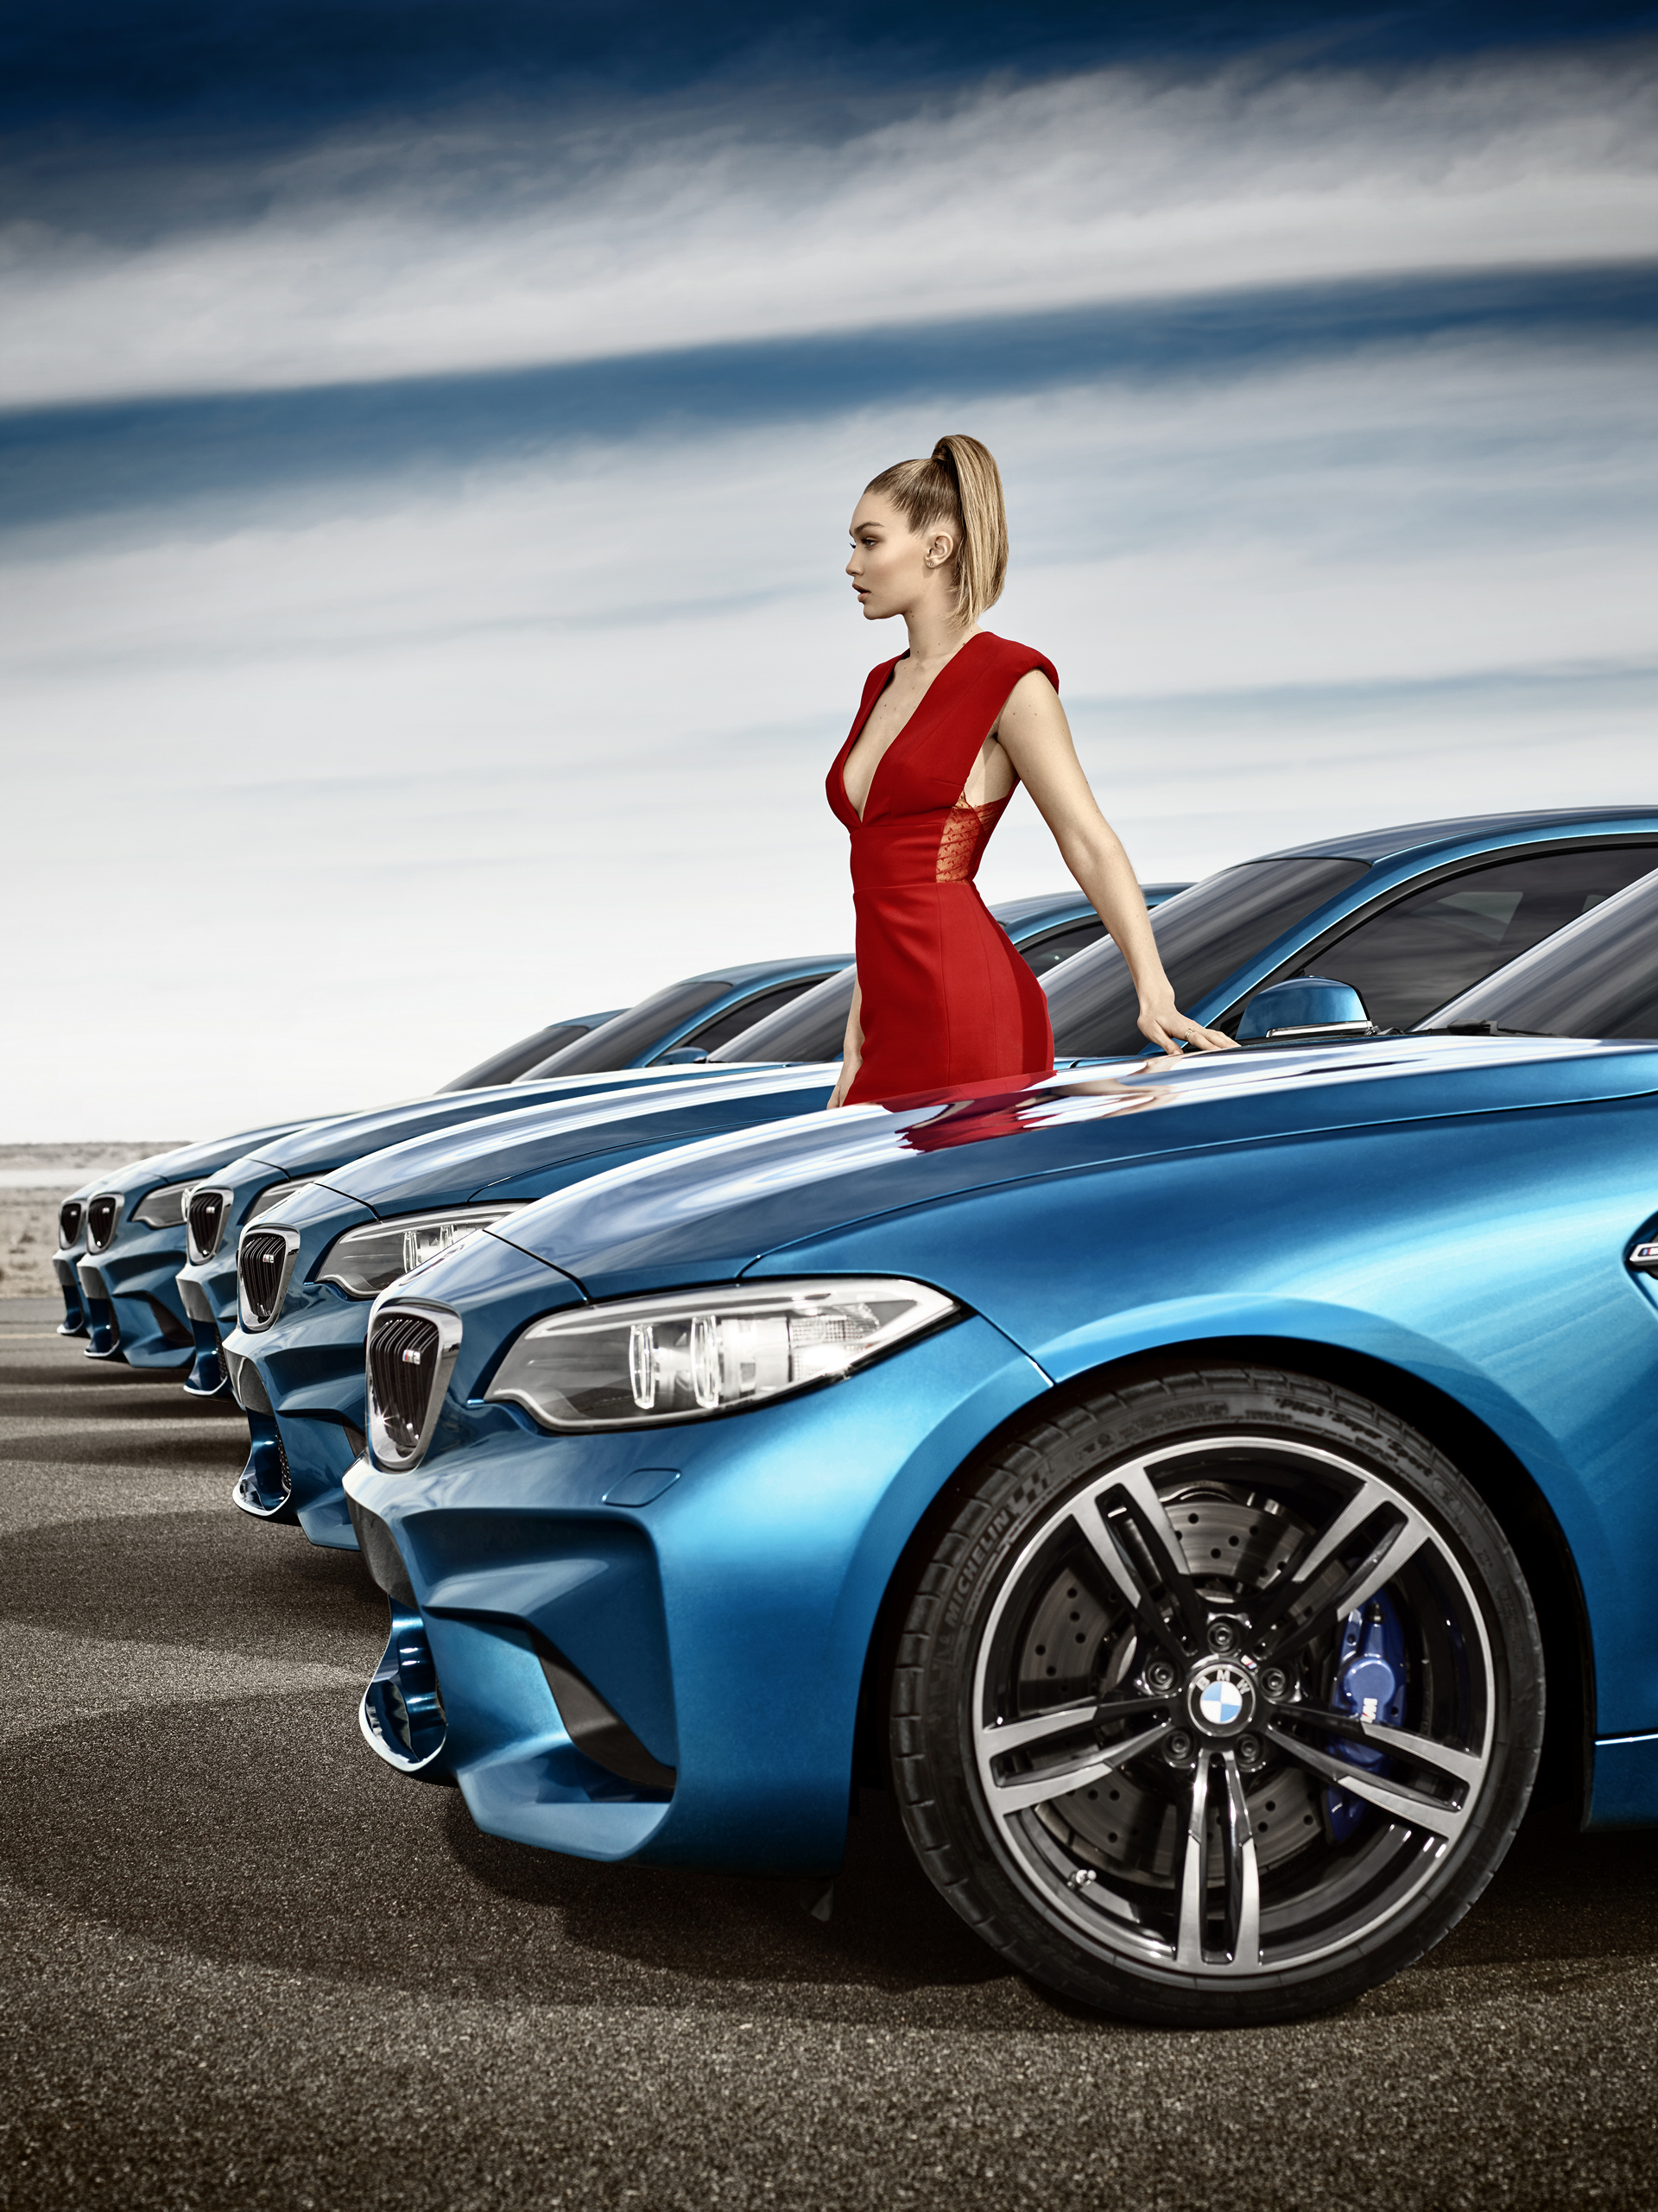 BMW Group expands technical campaign